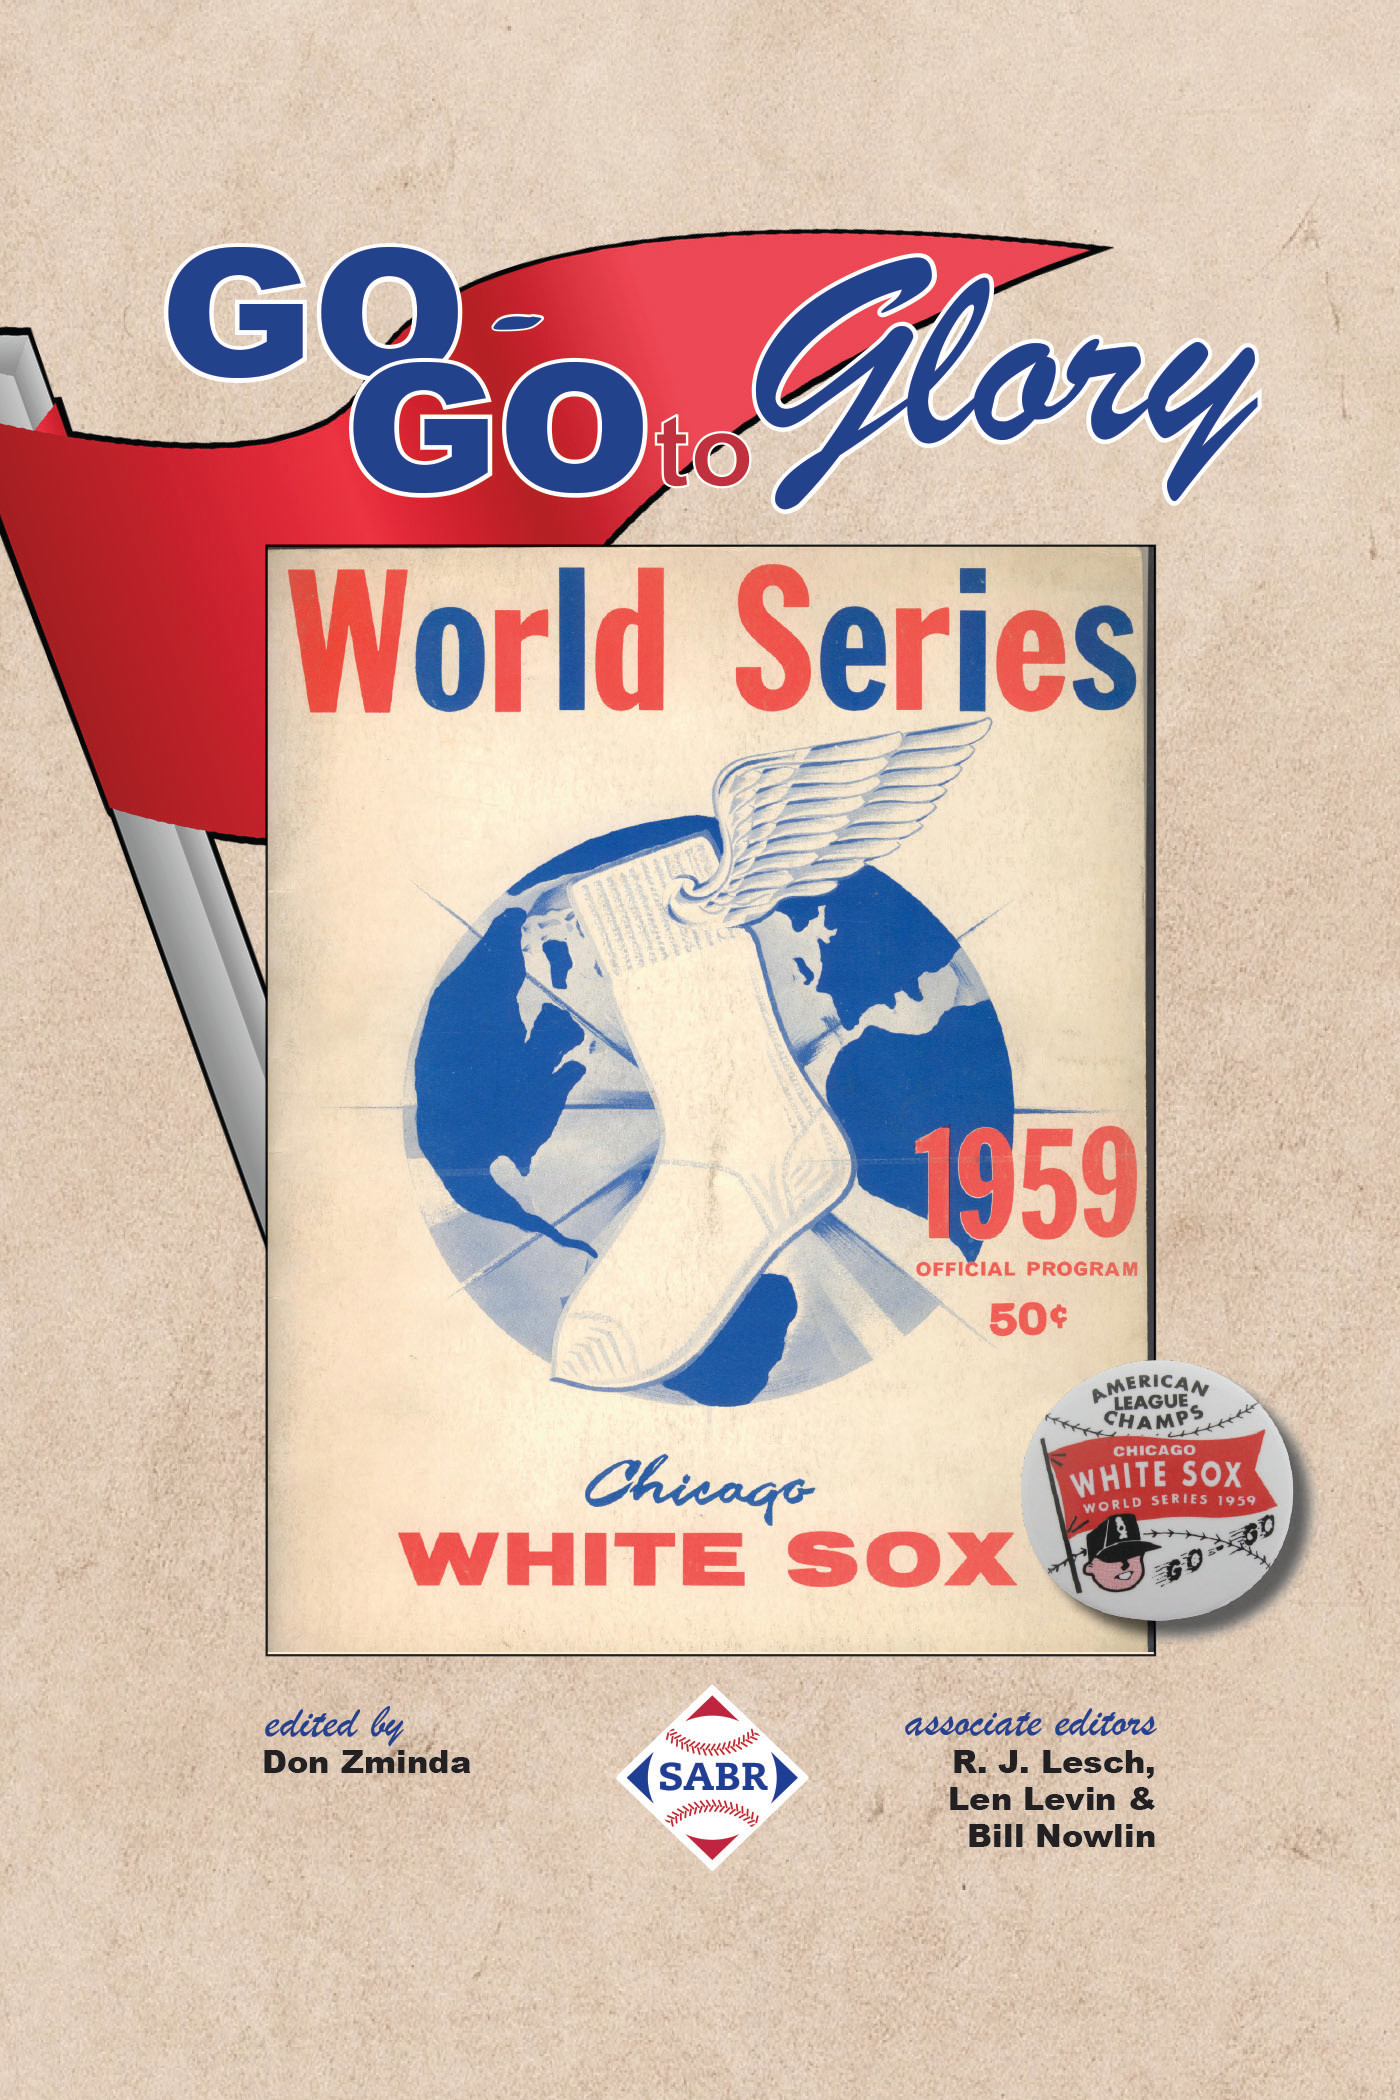 1959 Chicago White Sox book cover